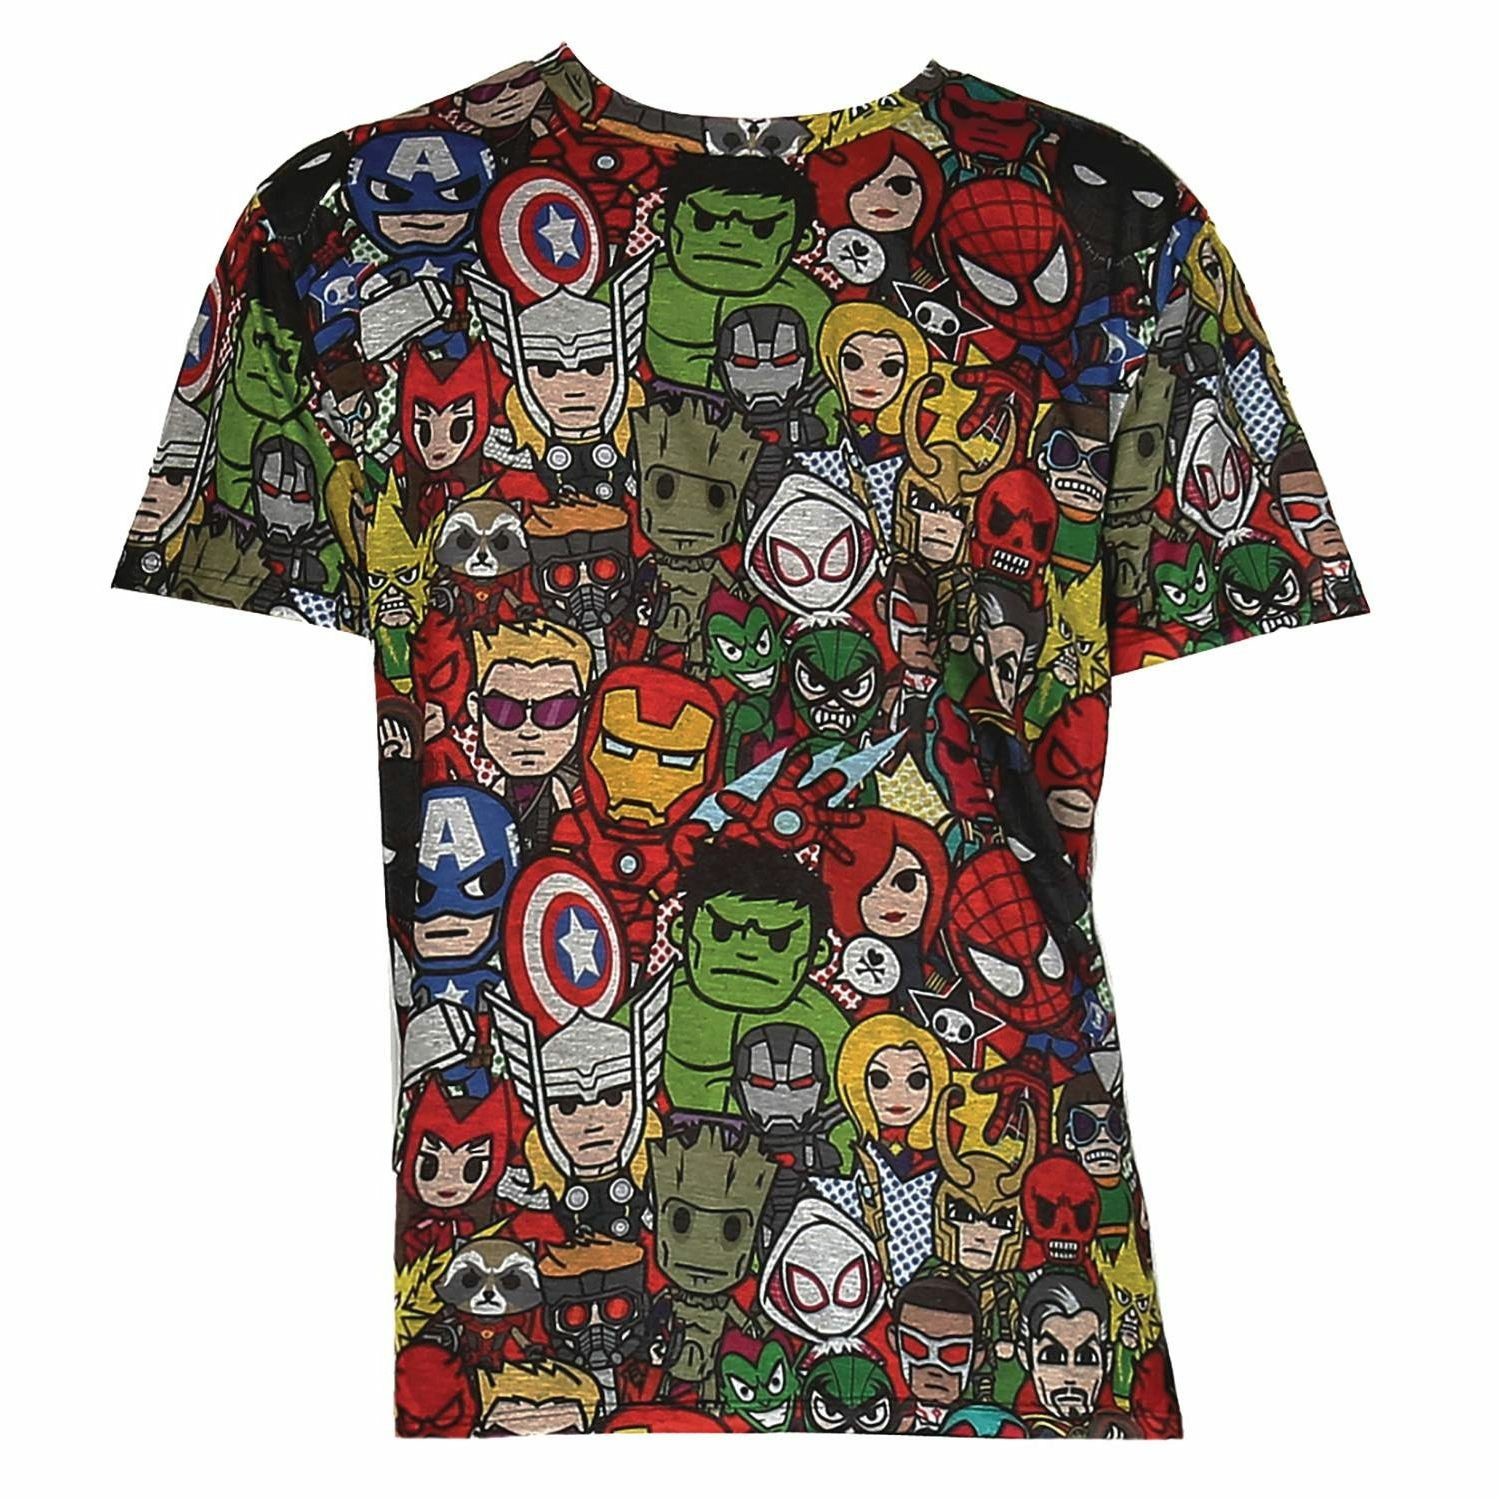 Marvel X Tokidoki Super Top Graphic T-Shirt